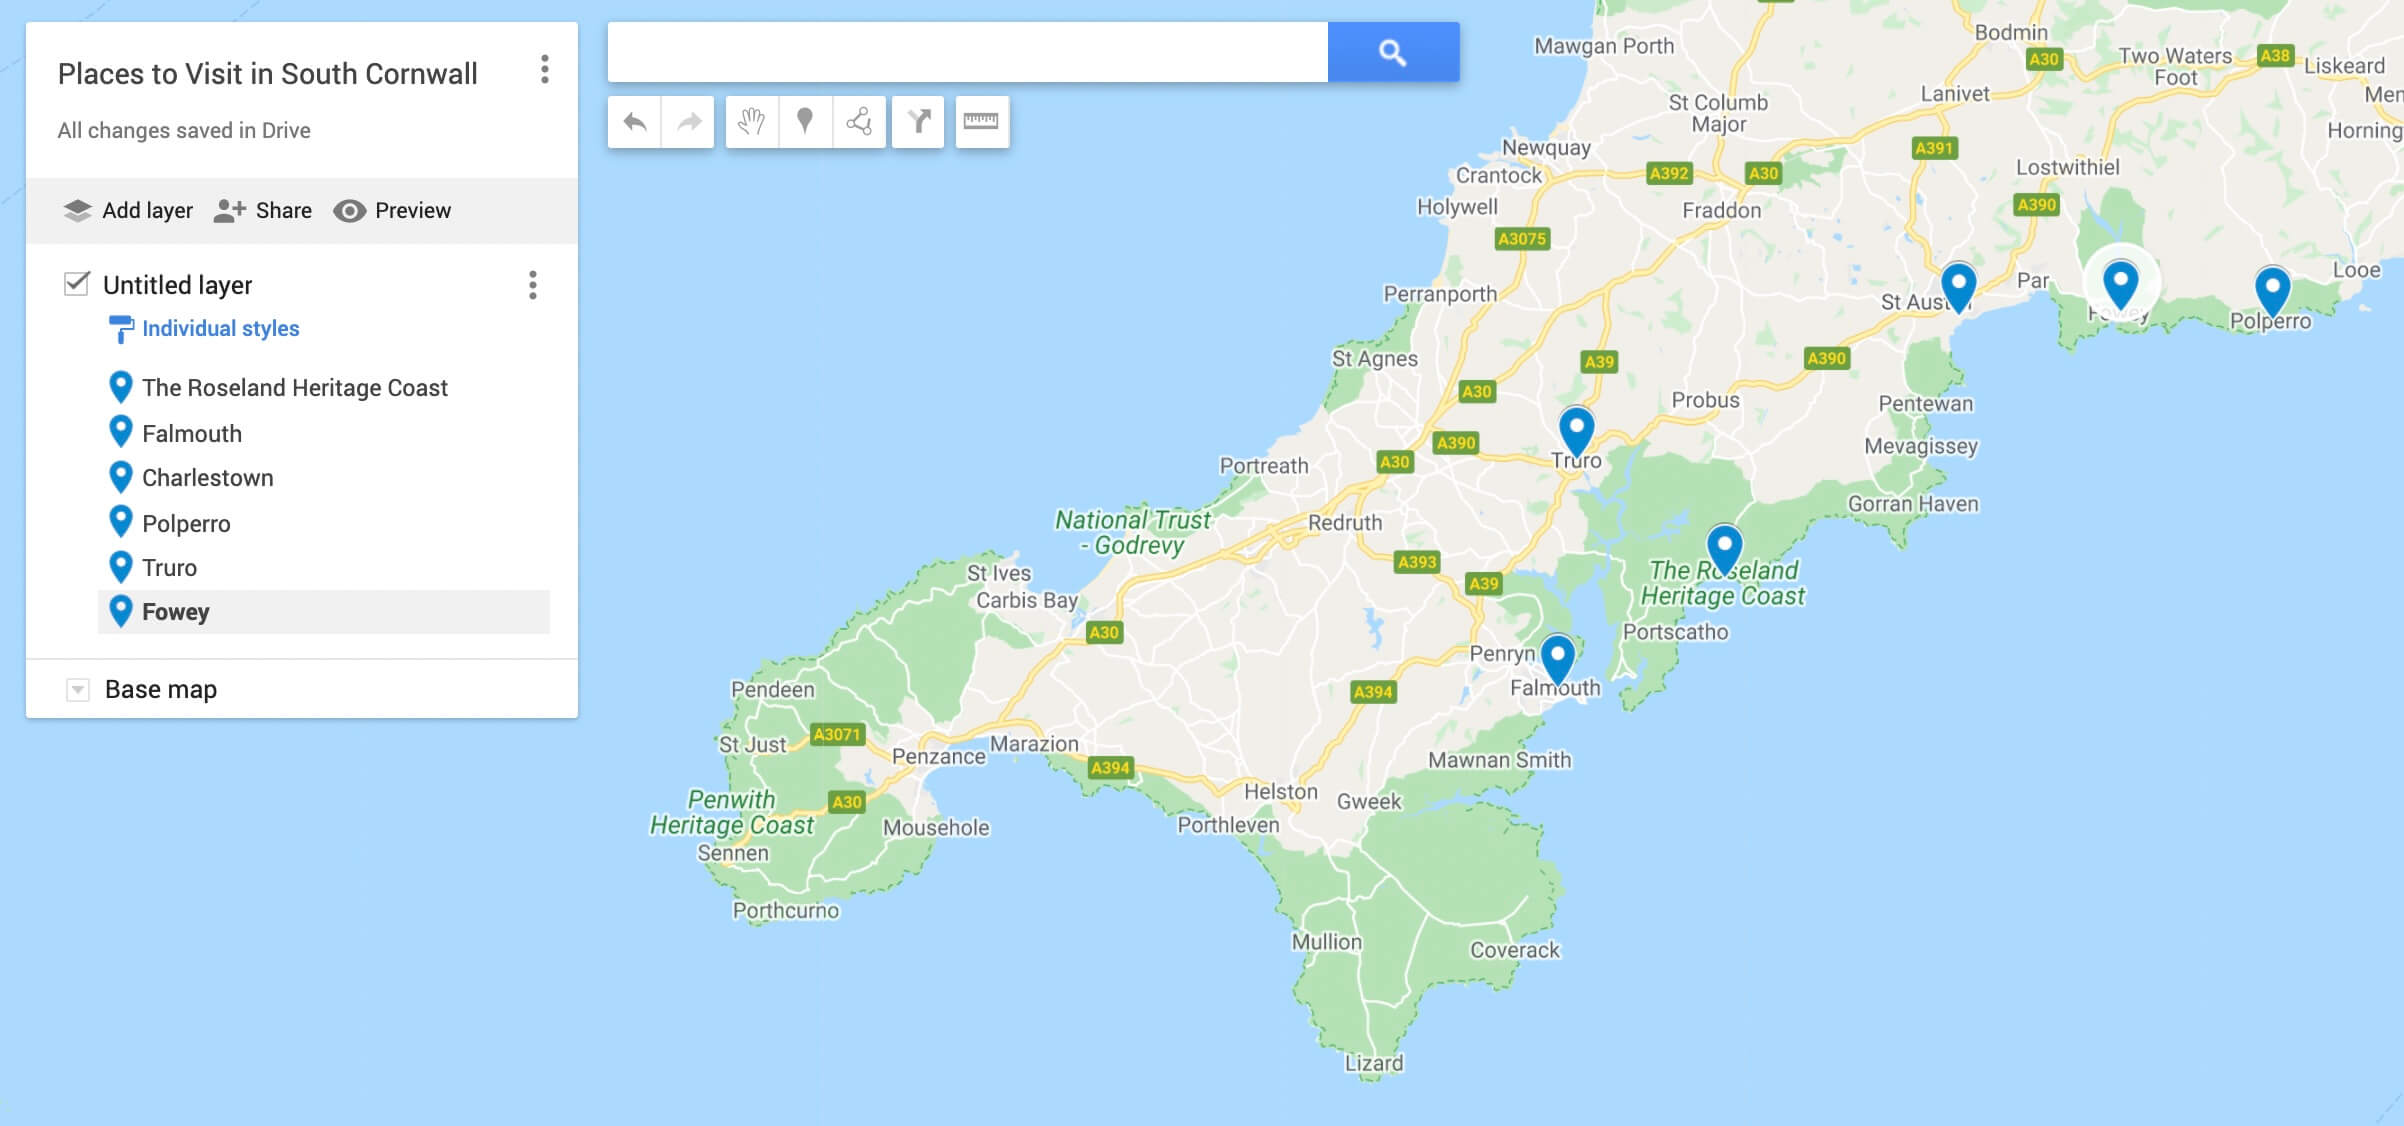 what to do in south cornwall